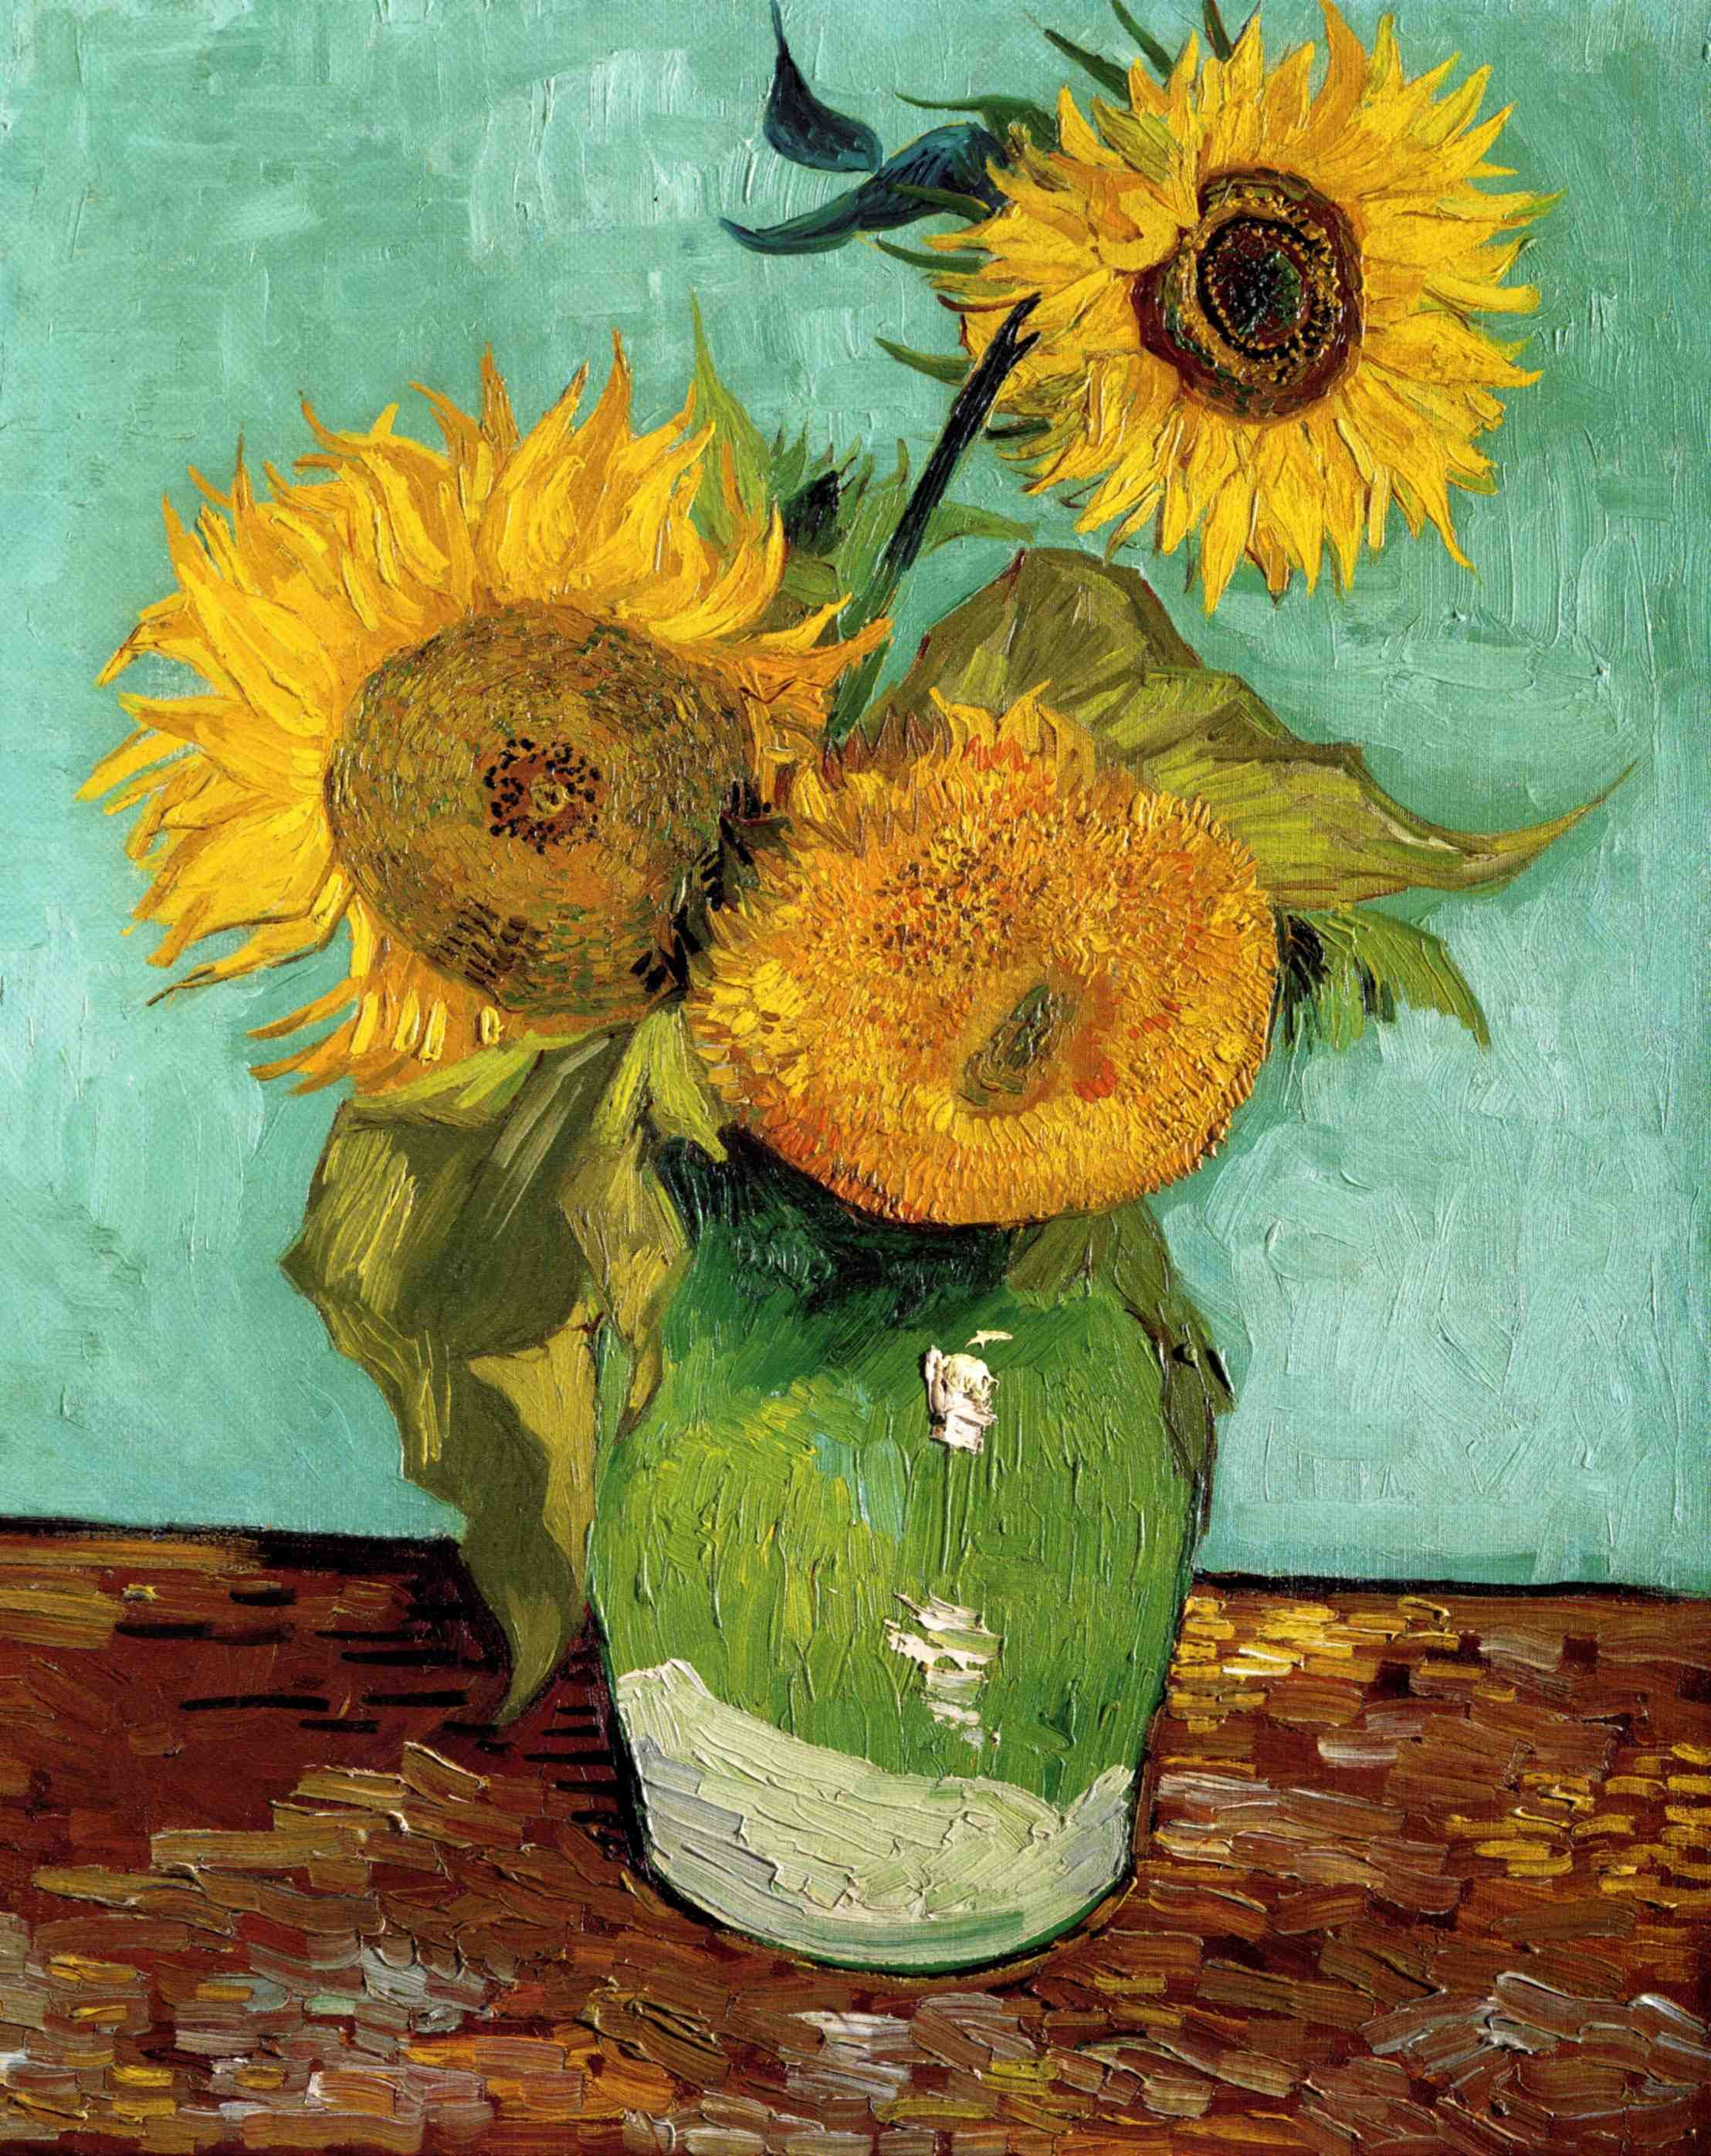 Vincent Van Gogh Paintings Sunflowers Pin By Synopsis On Vincent Van Gogh Paintings Pinterest